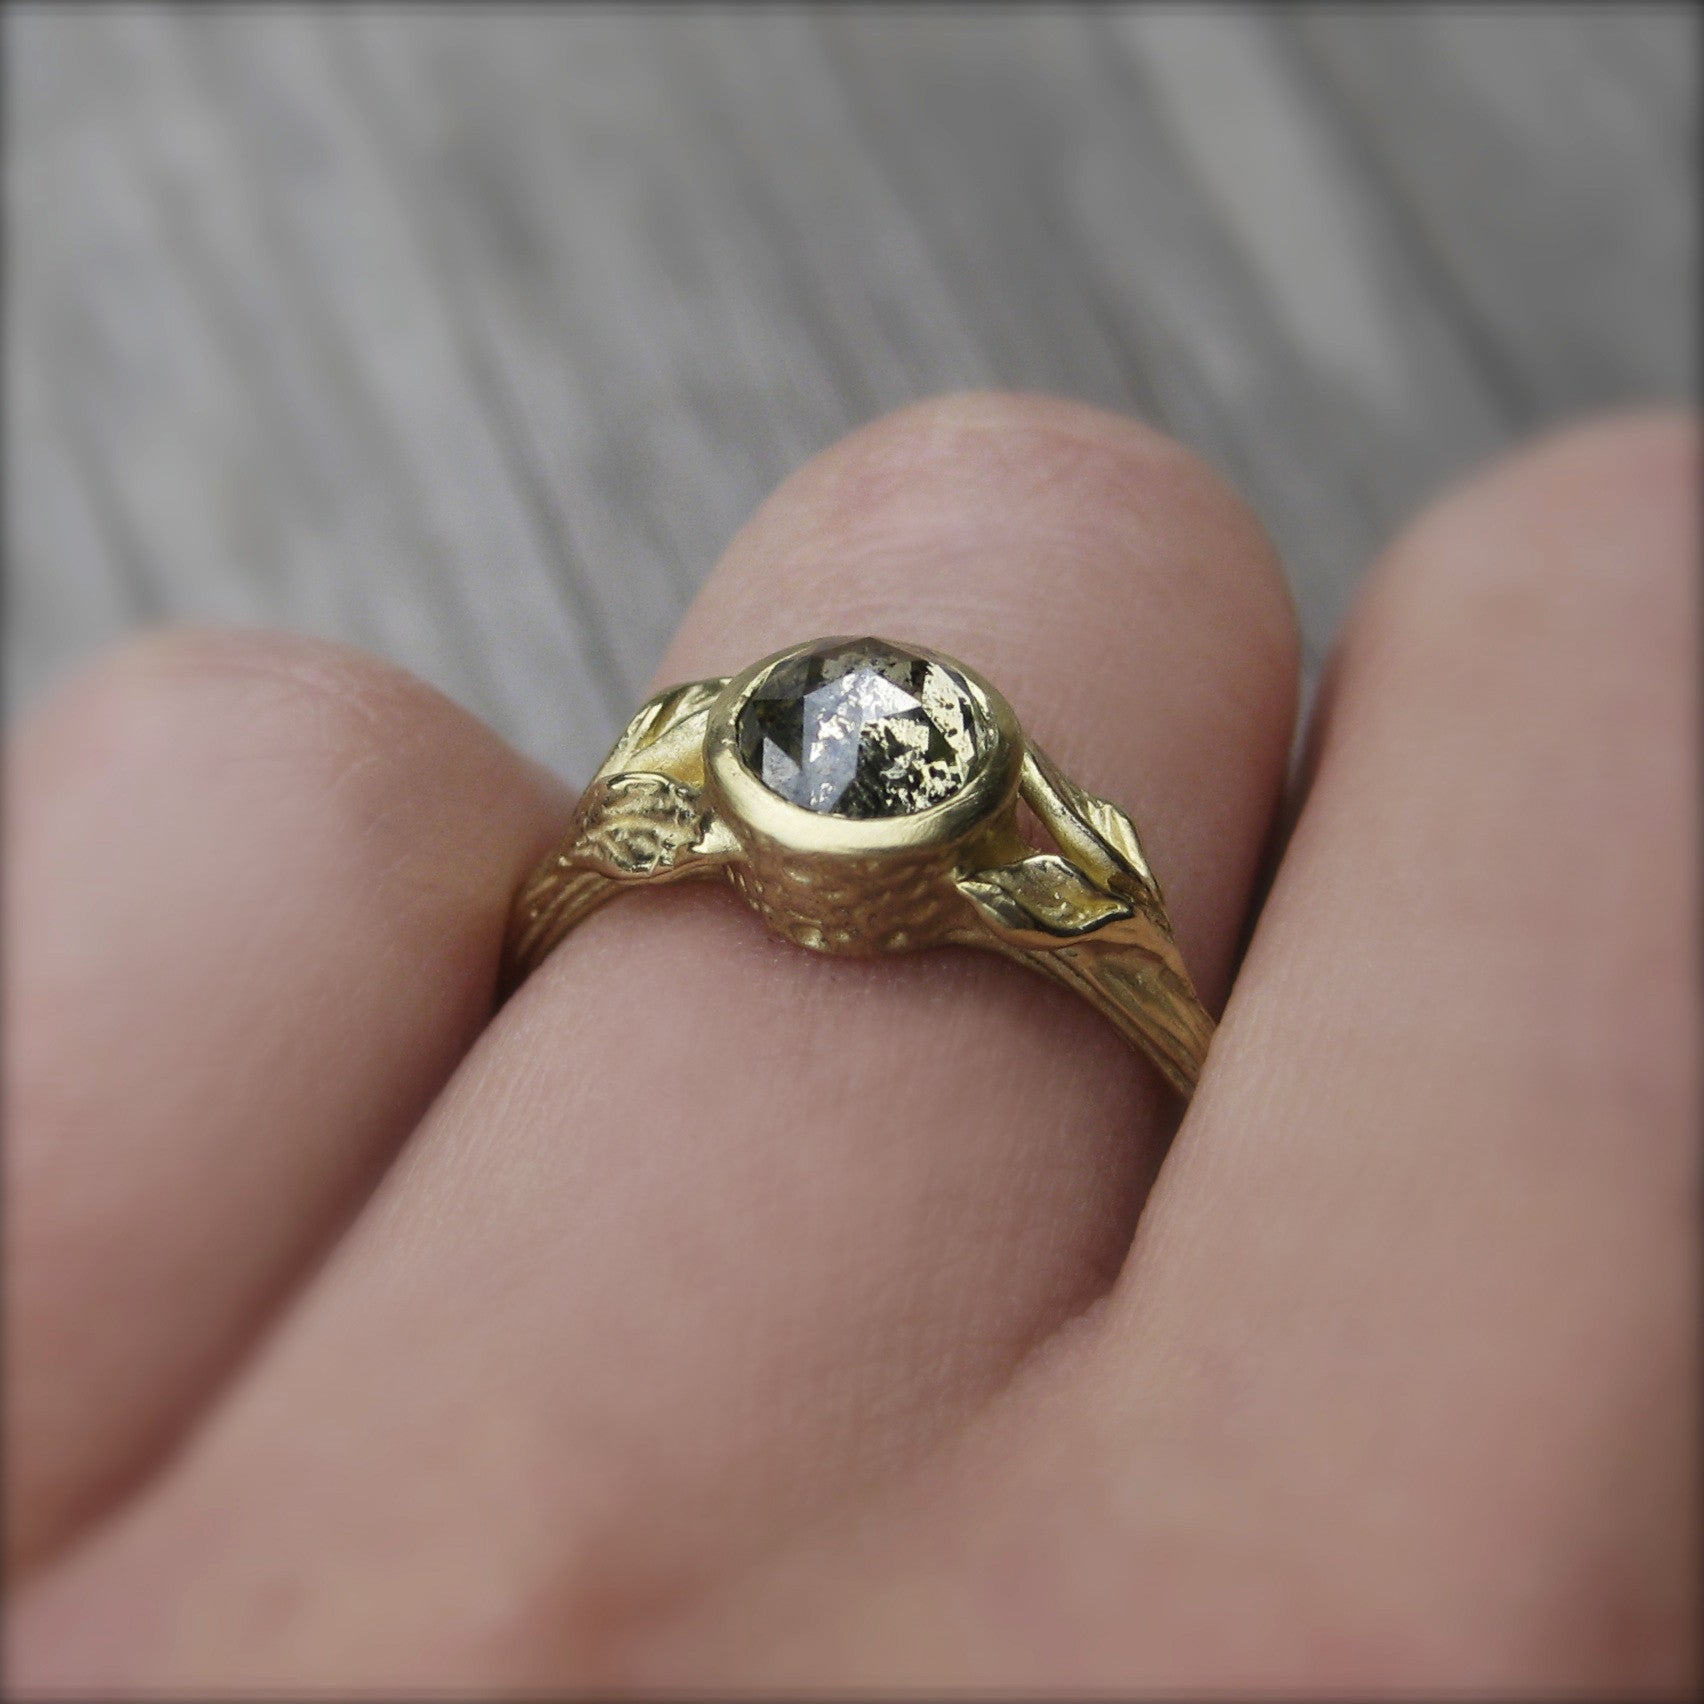 50 carat moissanite double claw round solitaire engagement ring in 14k yellow gold build a wedding ring 50 Carat Moissanite Double Claw Round Solitaire Engagement Ring in 14k Yellow Gold See Build